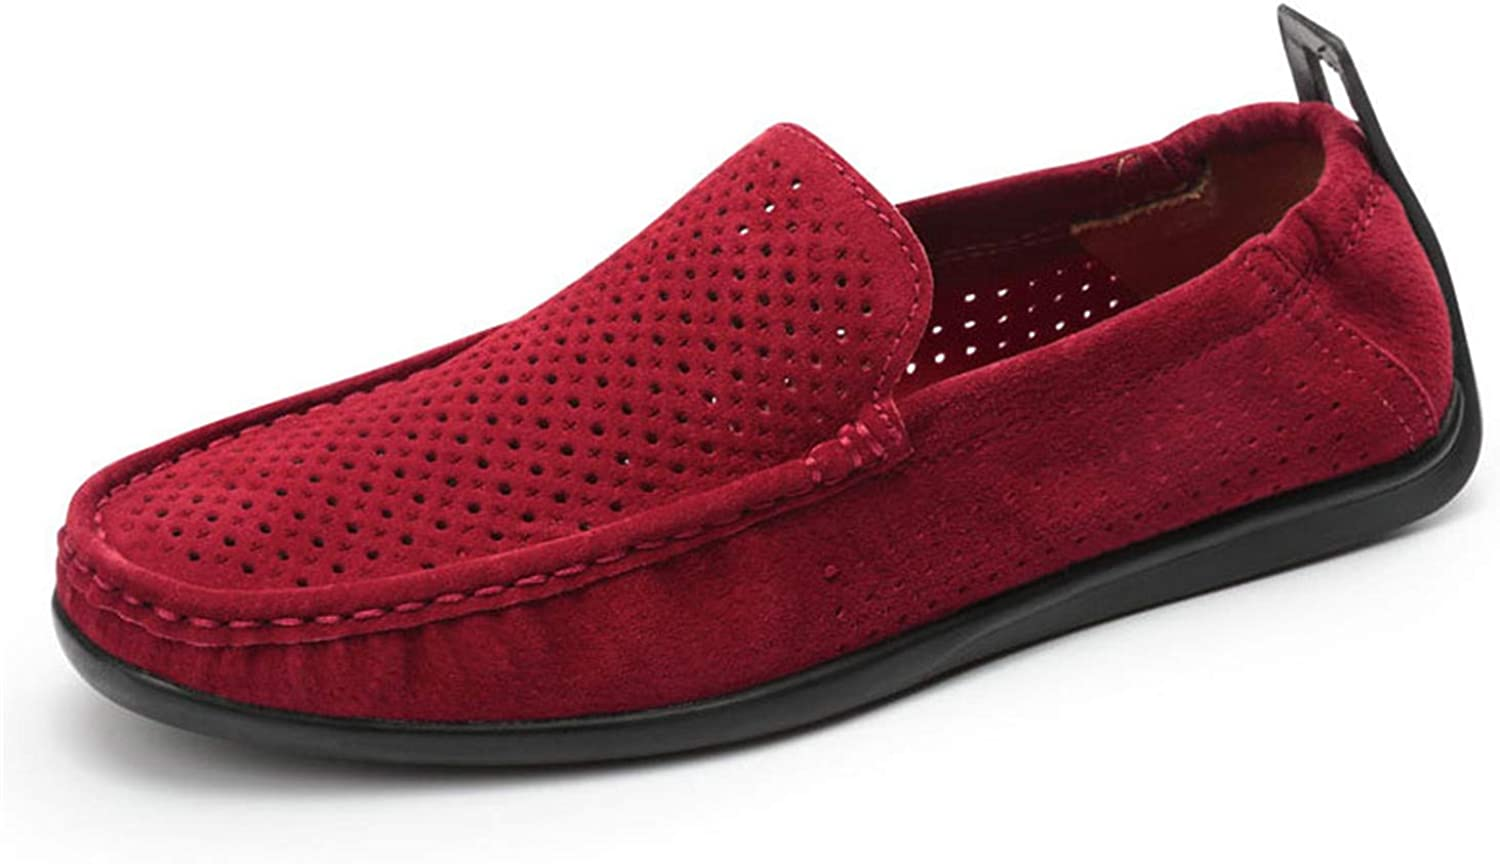 Thadensama Spring Summer Genuine Leather Moccasins Driving Loafers for Men Shoes Flats Breathable Soft Light Footwear Slip On Boat